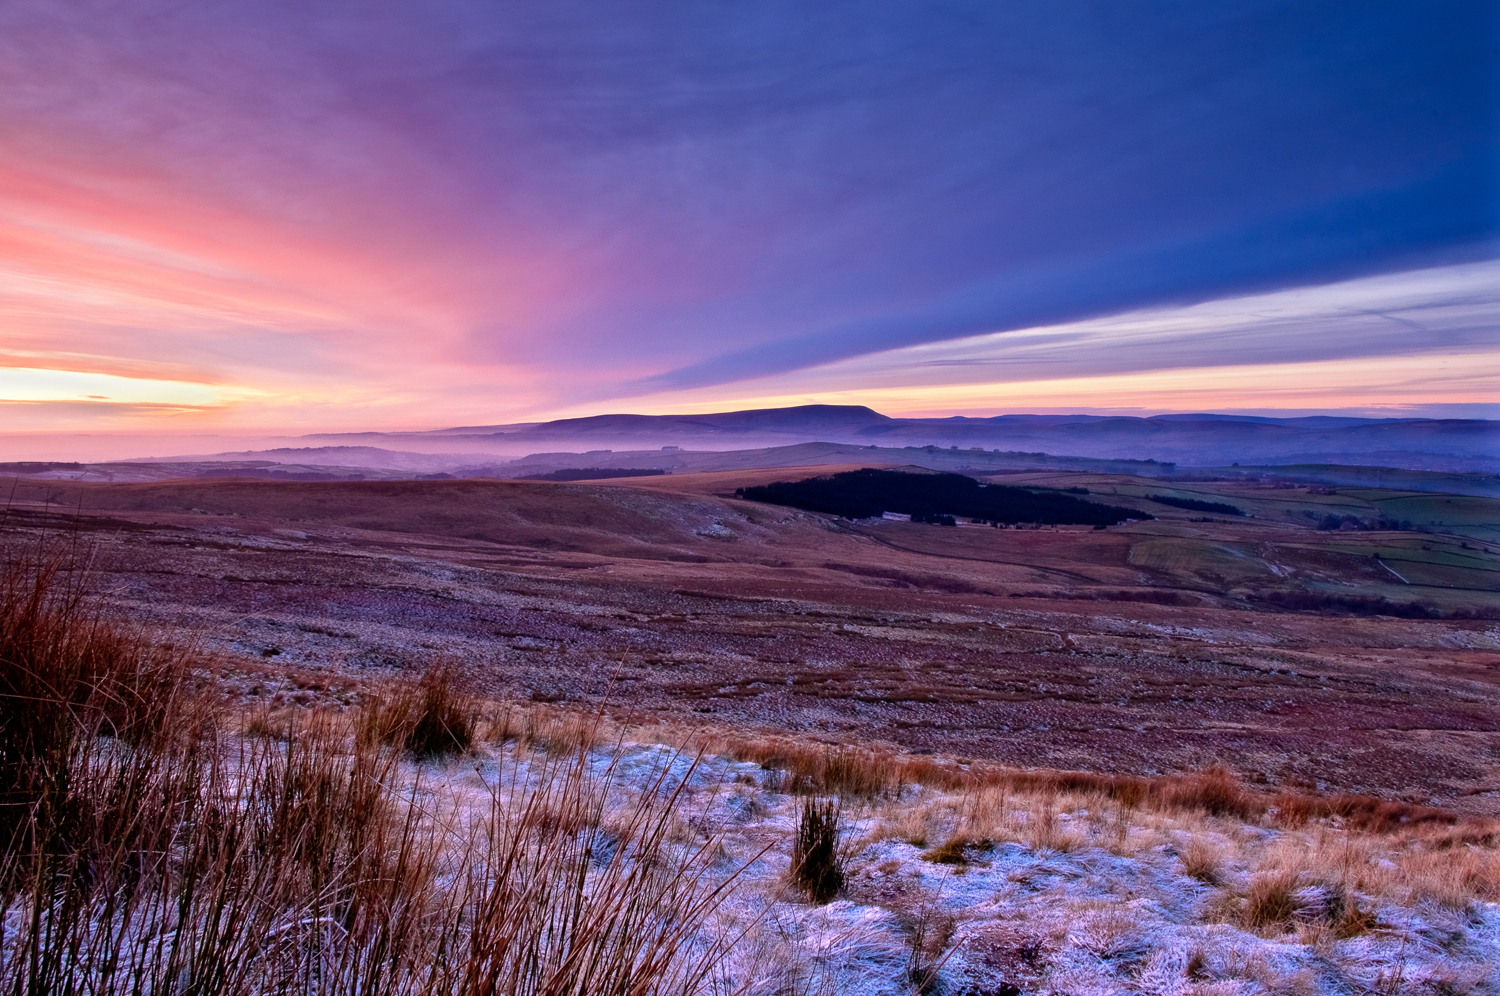 Have your say on a new Local Plan for Pendle